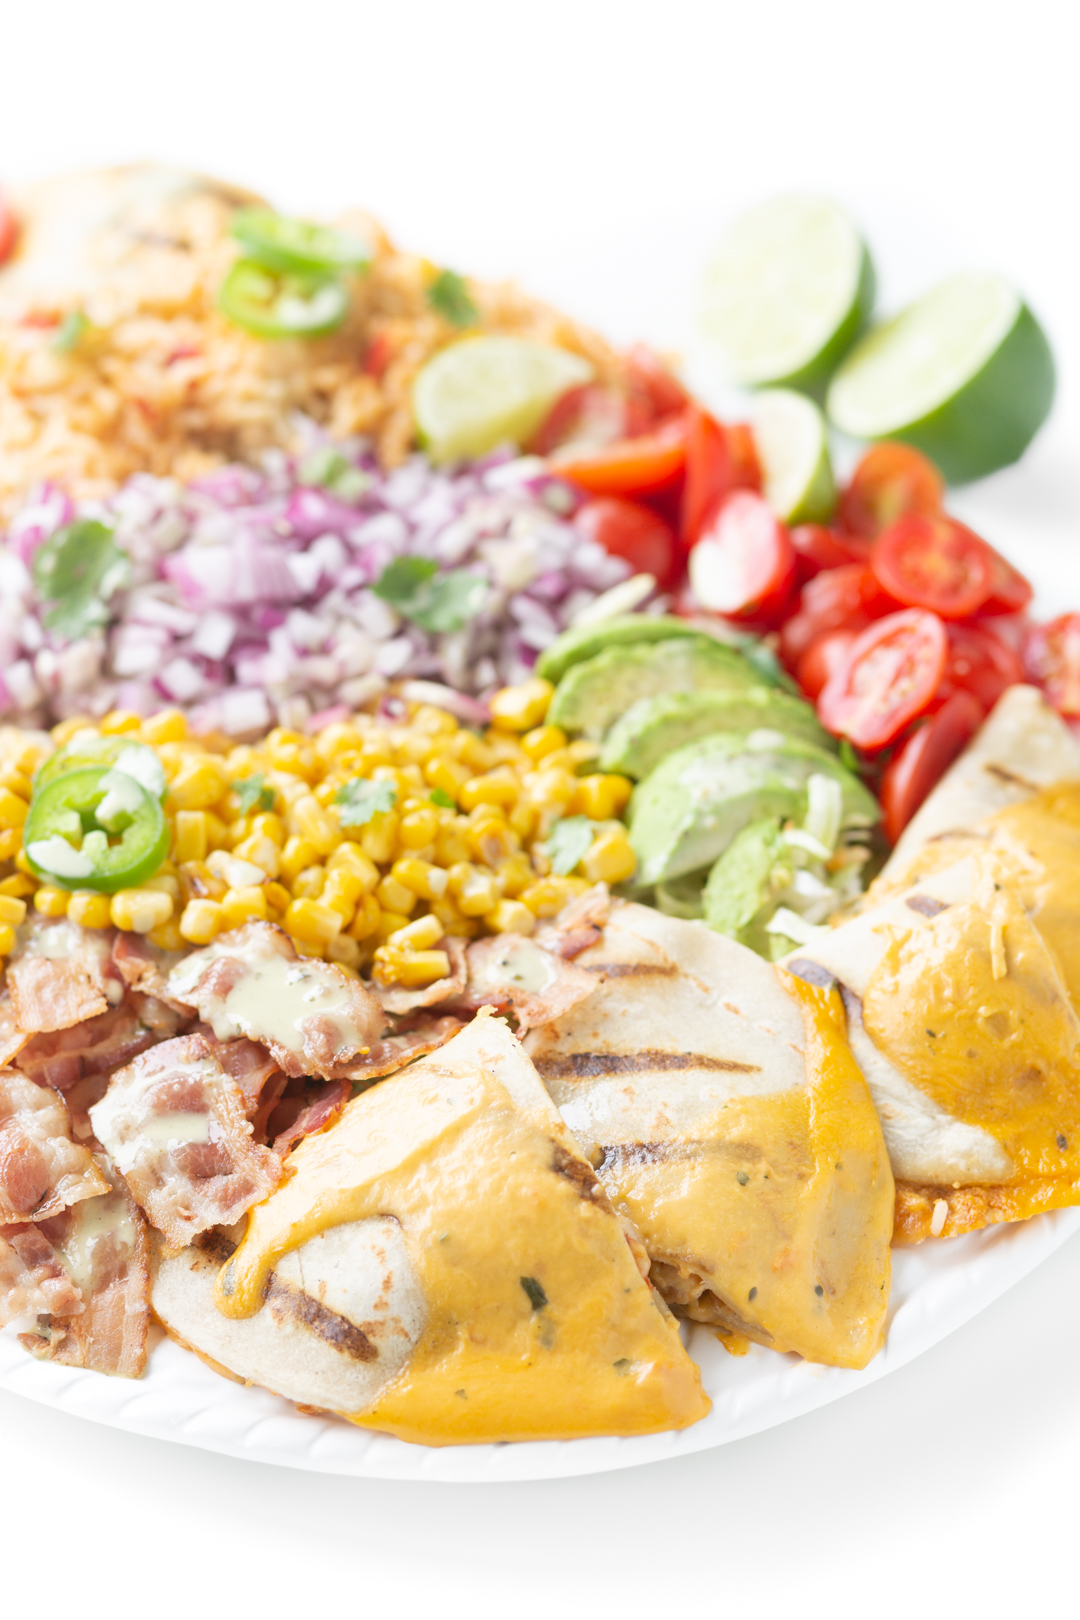 mexican inspired salad tray with mexican rice, quesadillas with cheesy sauce, bacon, grape tomatoes, fresh avocado slices, diced onions